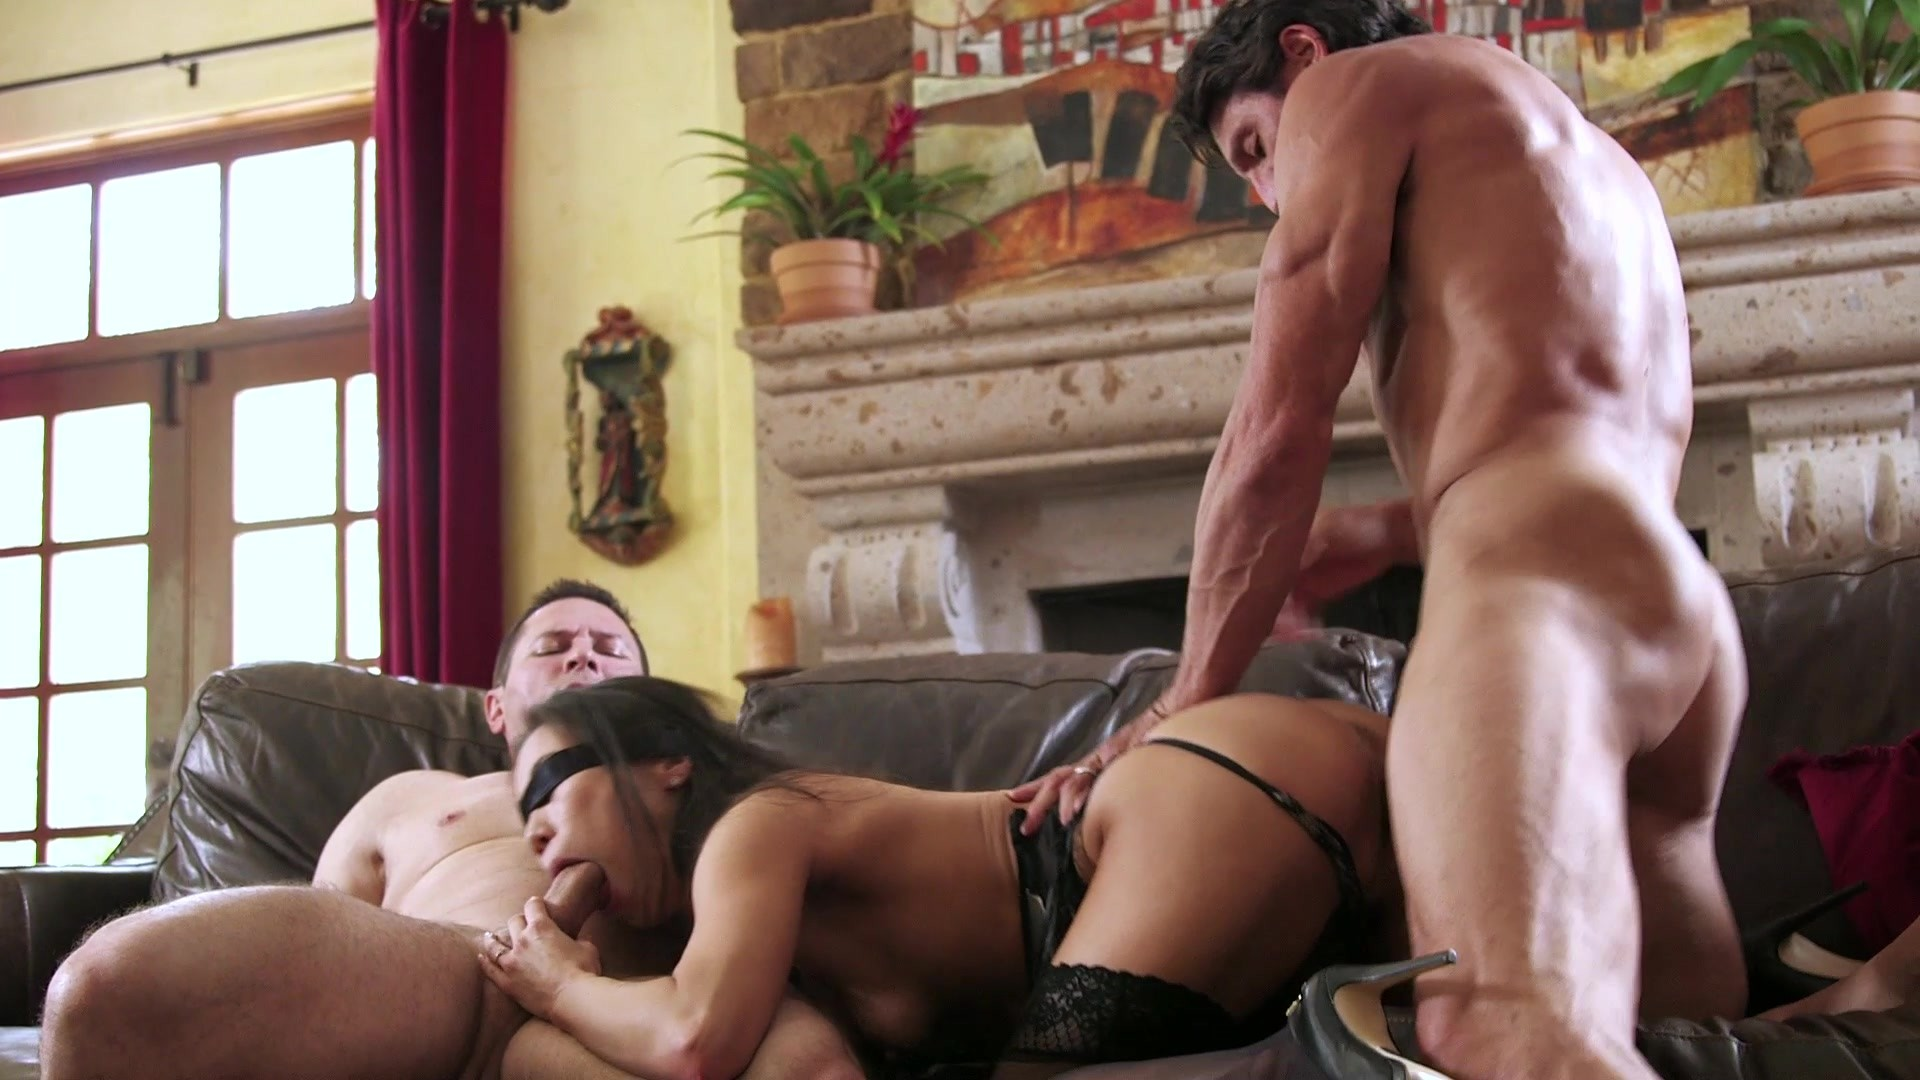 Scene with Tommy Gunn, John Strong and Kalina Ryu - image 11 out of 20